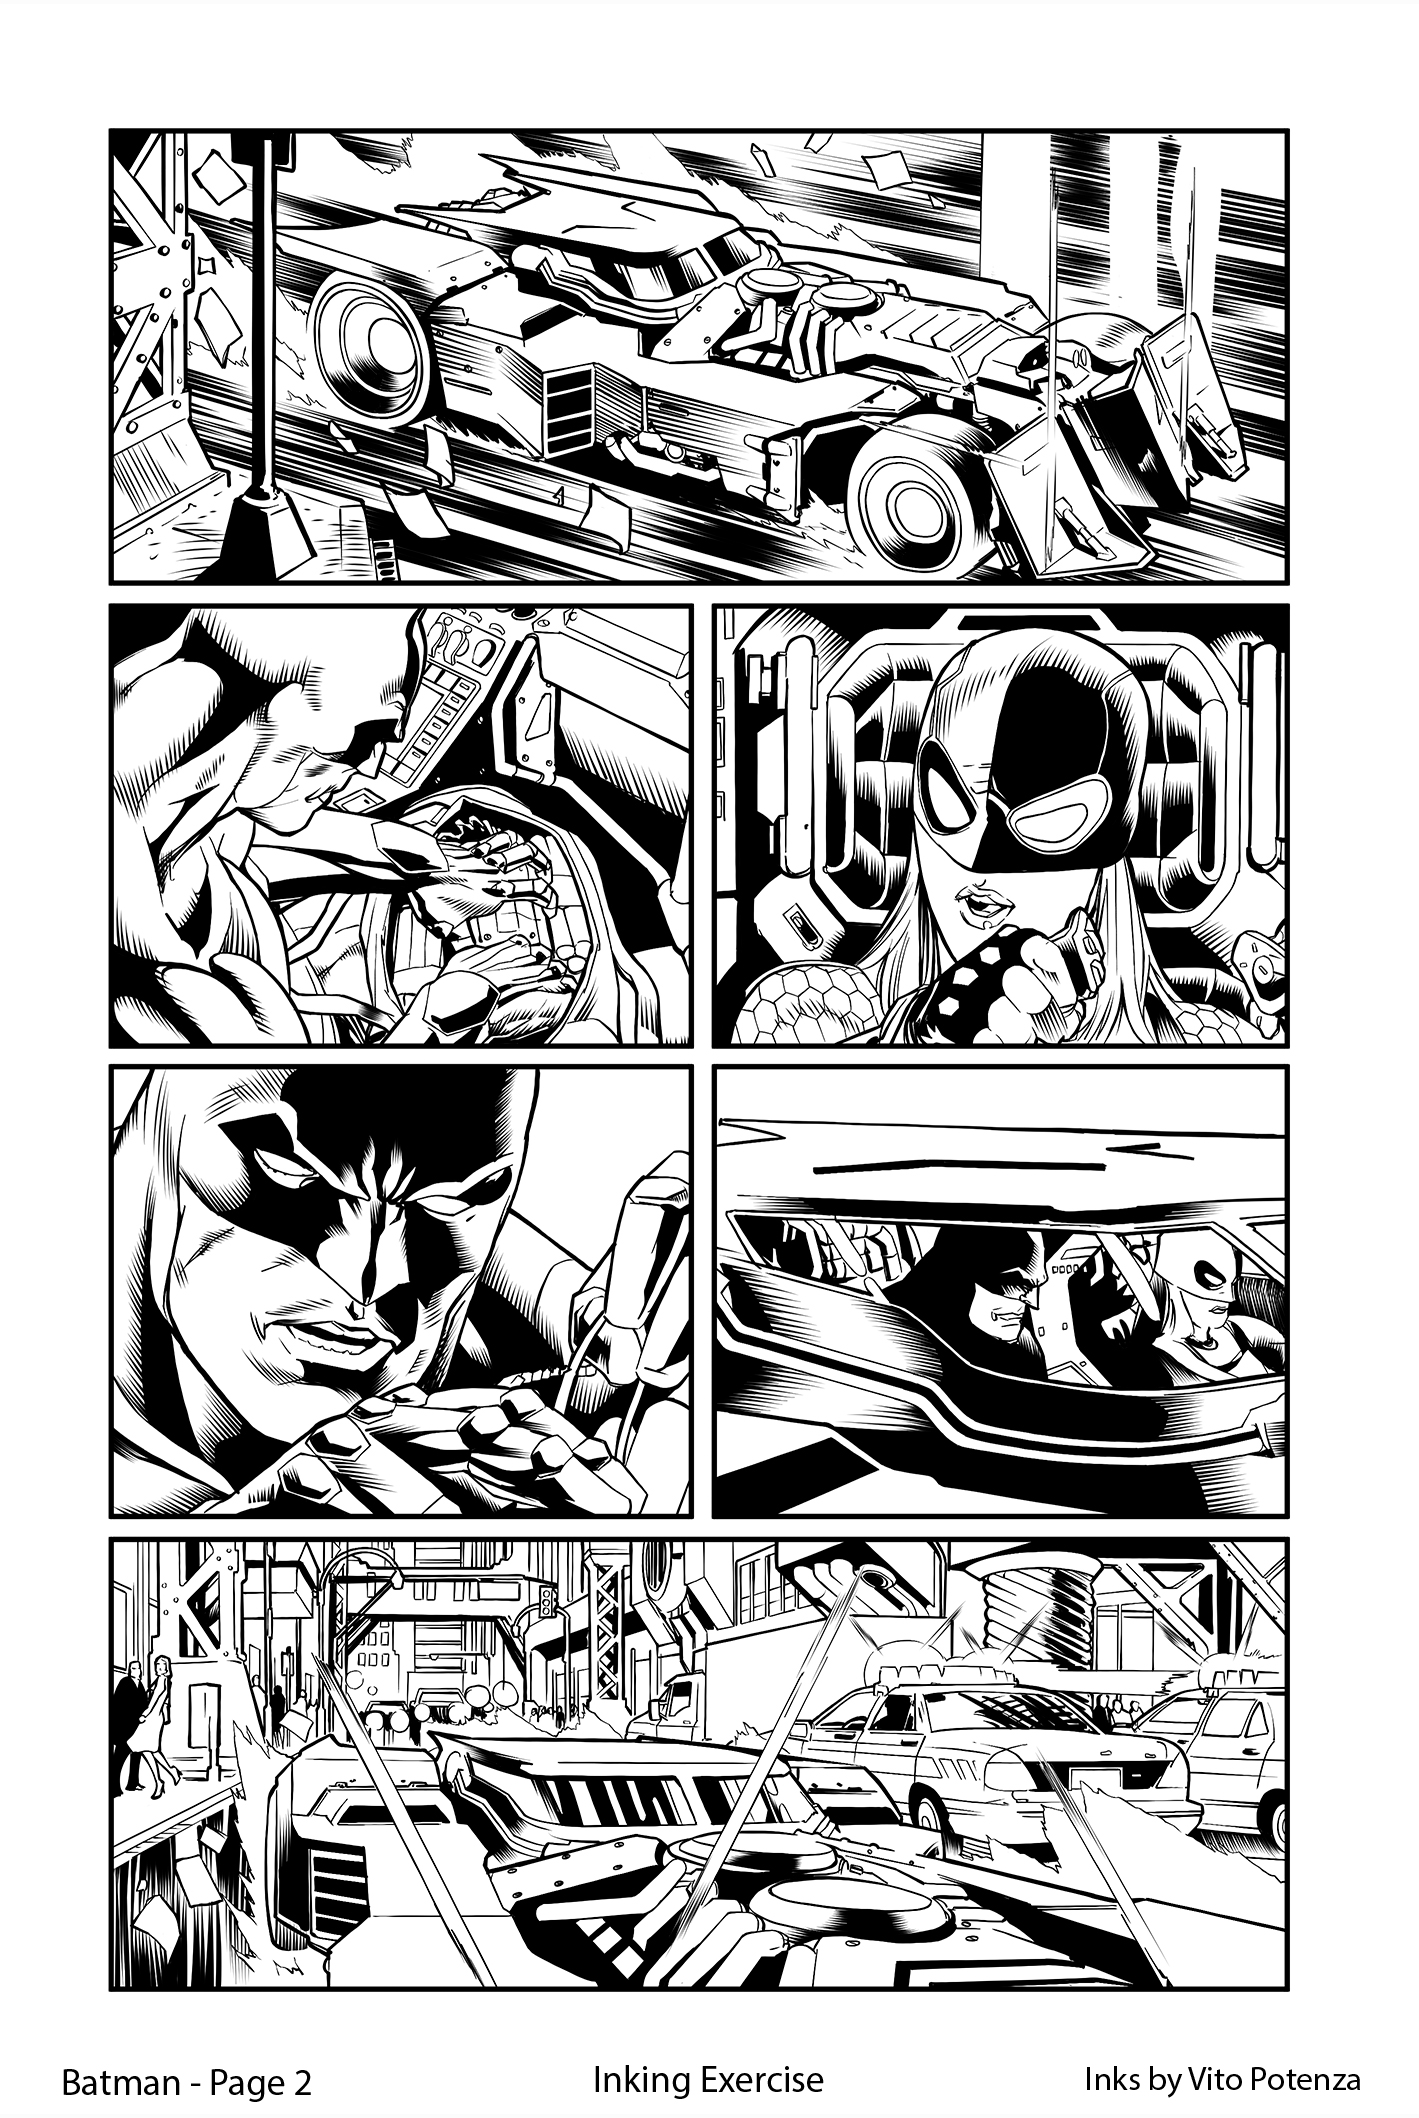 Batman, Page 2 – Inking Exercise